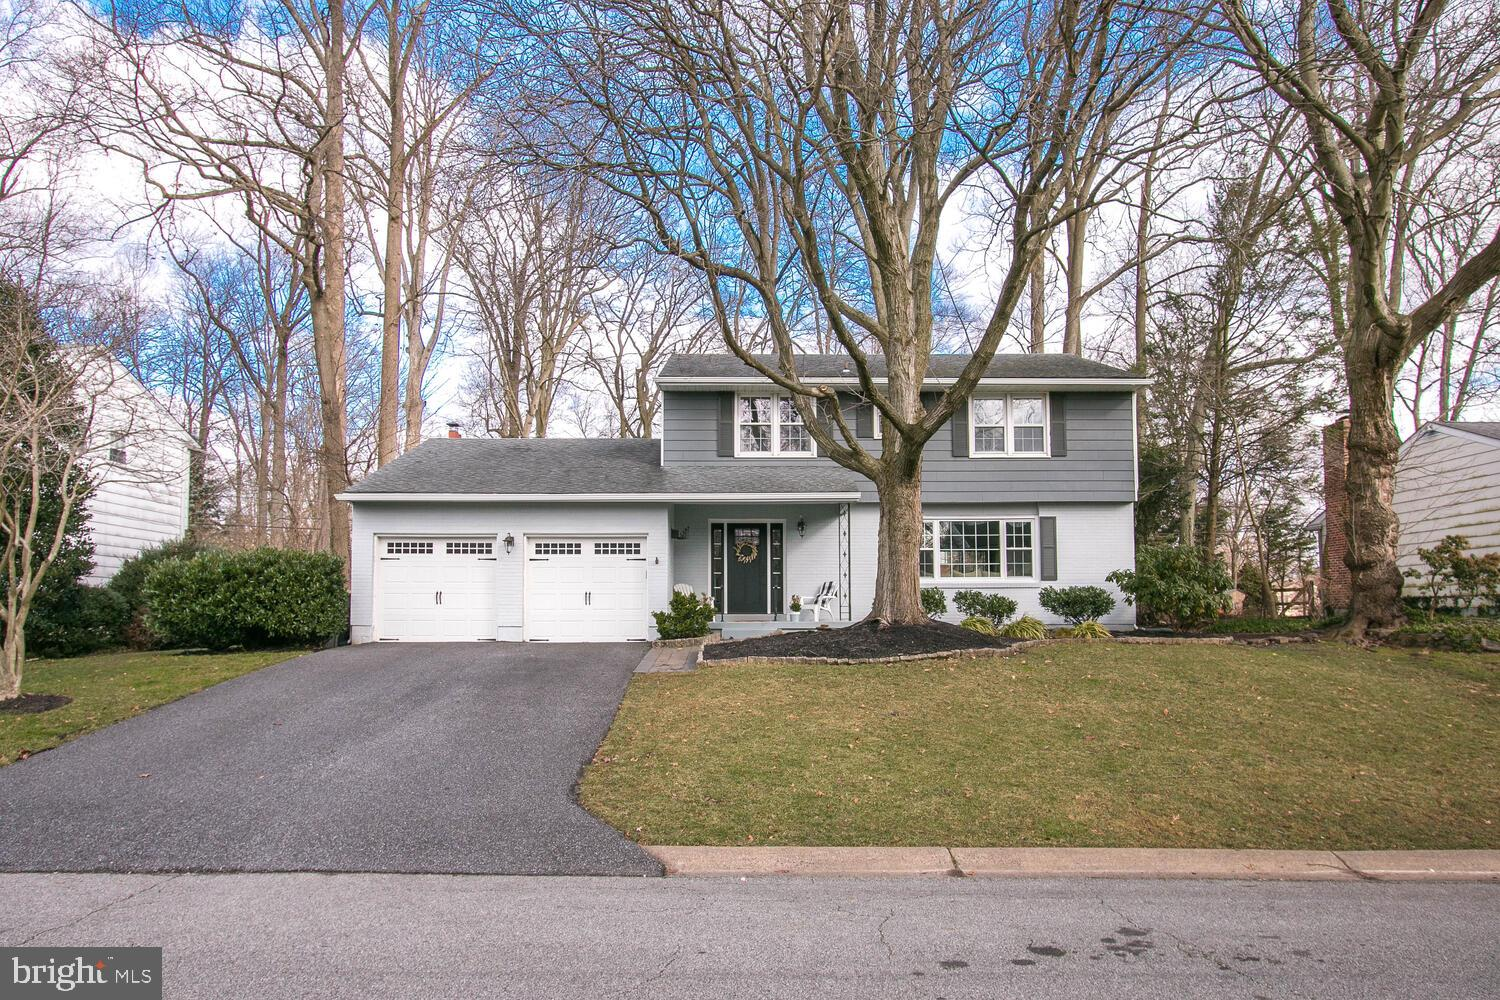 Visit this home virtually: https://tours.propertysnappers.com/public/vtour/display/1762198?idx=1#!/ - Start your New Year off right in this fabulous 2-story colonial located in the always-popular N. Wilmington community of Brandywood. This home boasts a hard-to-find open floor plan including a beautifully designed kitchen renovation featuring stylish white cabinetry, chic Carrara marble counter tops, farmhouse sink, stainless steel appliances, a large center island with seating, sleek black granite counter top & built-in microwave. The adjacent dining area & generously-sized great room makes this the the perfect spot for gatherings! A few other must-haves in this 4BD, 2.5BA home include: gleaming hardwood floors, replacement windows, updated light fixtures, plenty of natural light & a tasteful color palette throughout. The main floor family room is warm & inviting with a wood-burning fireplace. Convenient main level laundry & powder room completes this level. On the second floor you'll find the well-sized primary bedroom with walk-in closet and renovated private updated full bath. Three additional bedrooms share the full hall bath. Wonderful curb appeal plus a level rear yard with large paver patio & mature trees for your natural summer shade. A two-car garage with interior access plus an unfinished basement offering plenty of storage space or an opportunity to finish for additional living space completes the package. 2021 - New Gutters, 2019 - Insulation improvements completed per Energize Delaware's Home Performance with Energy Star Program. Close to convenient shopping & dining in N. Wilmington or nearby PA with easy commutes to Downtown Wilmington or Philadelphia. This home is a great choice that you'll be proud to call HOME.